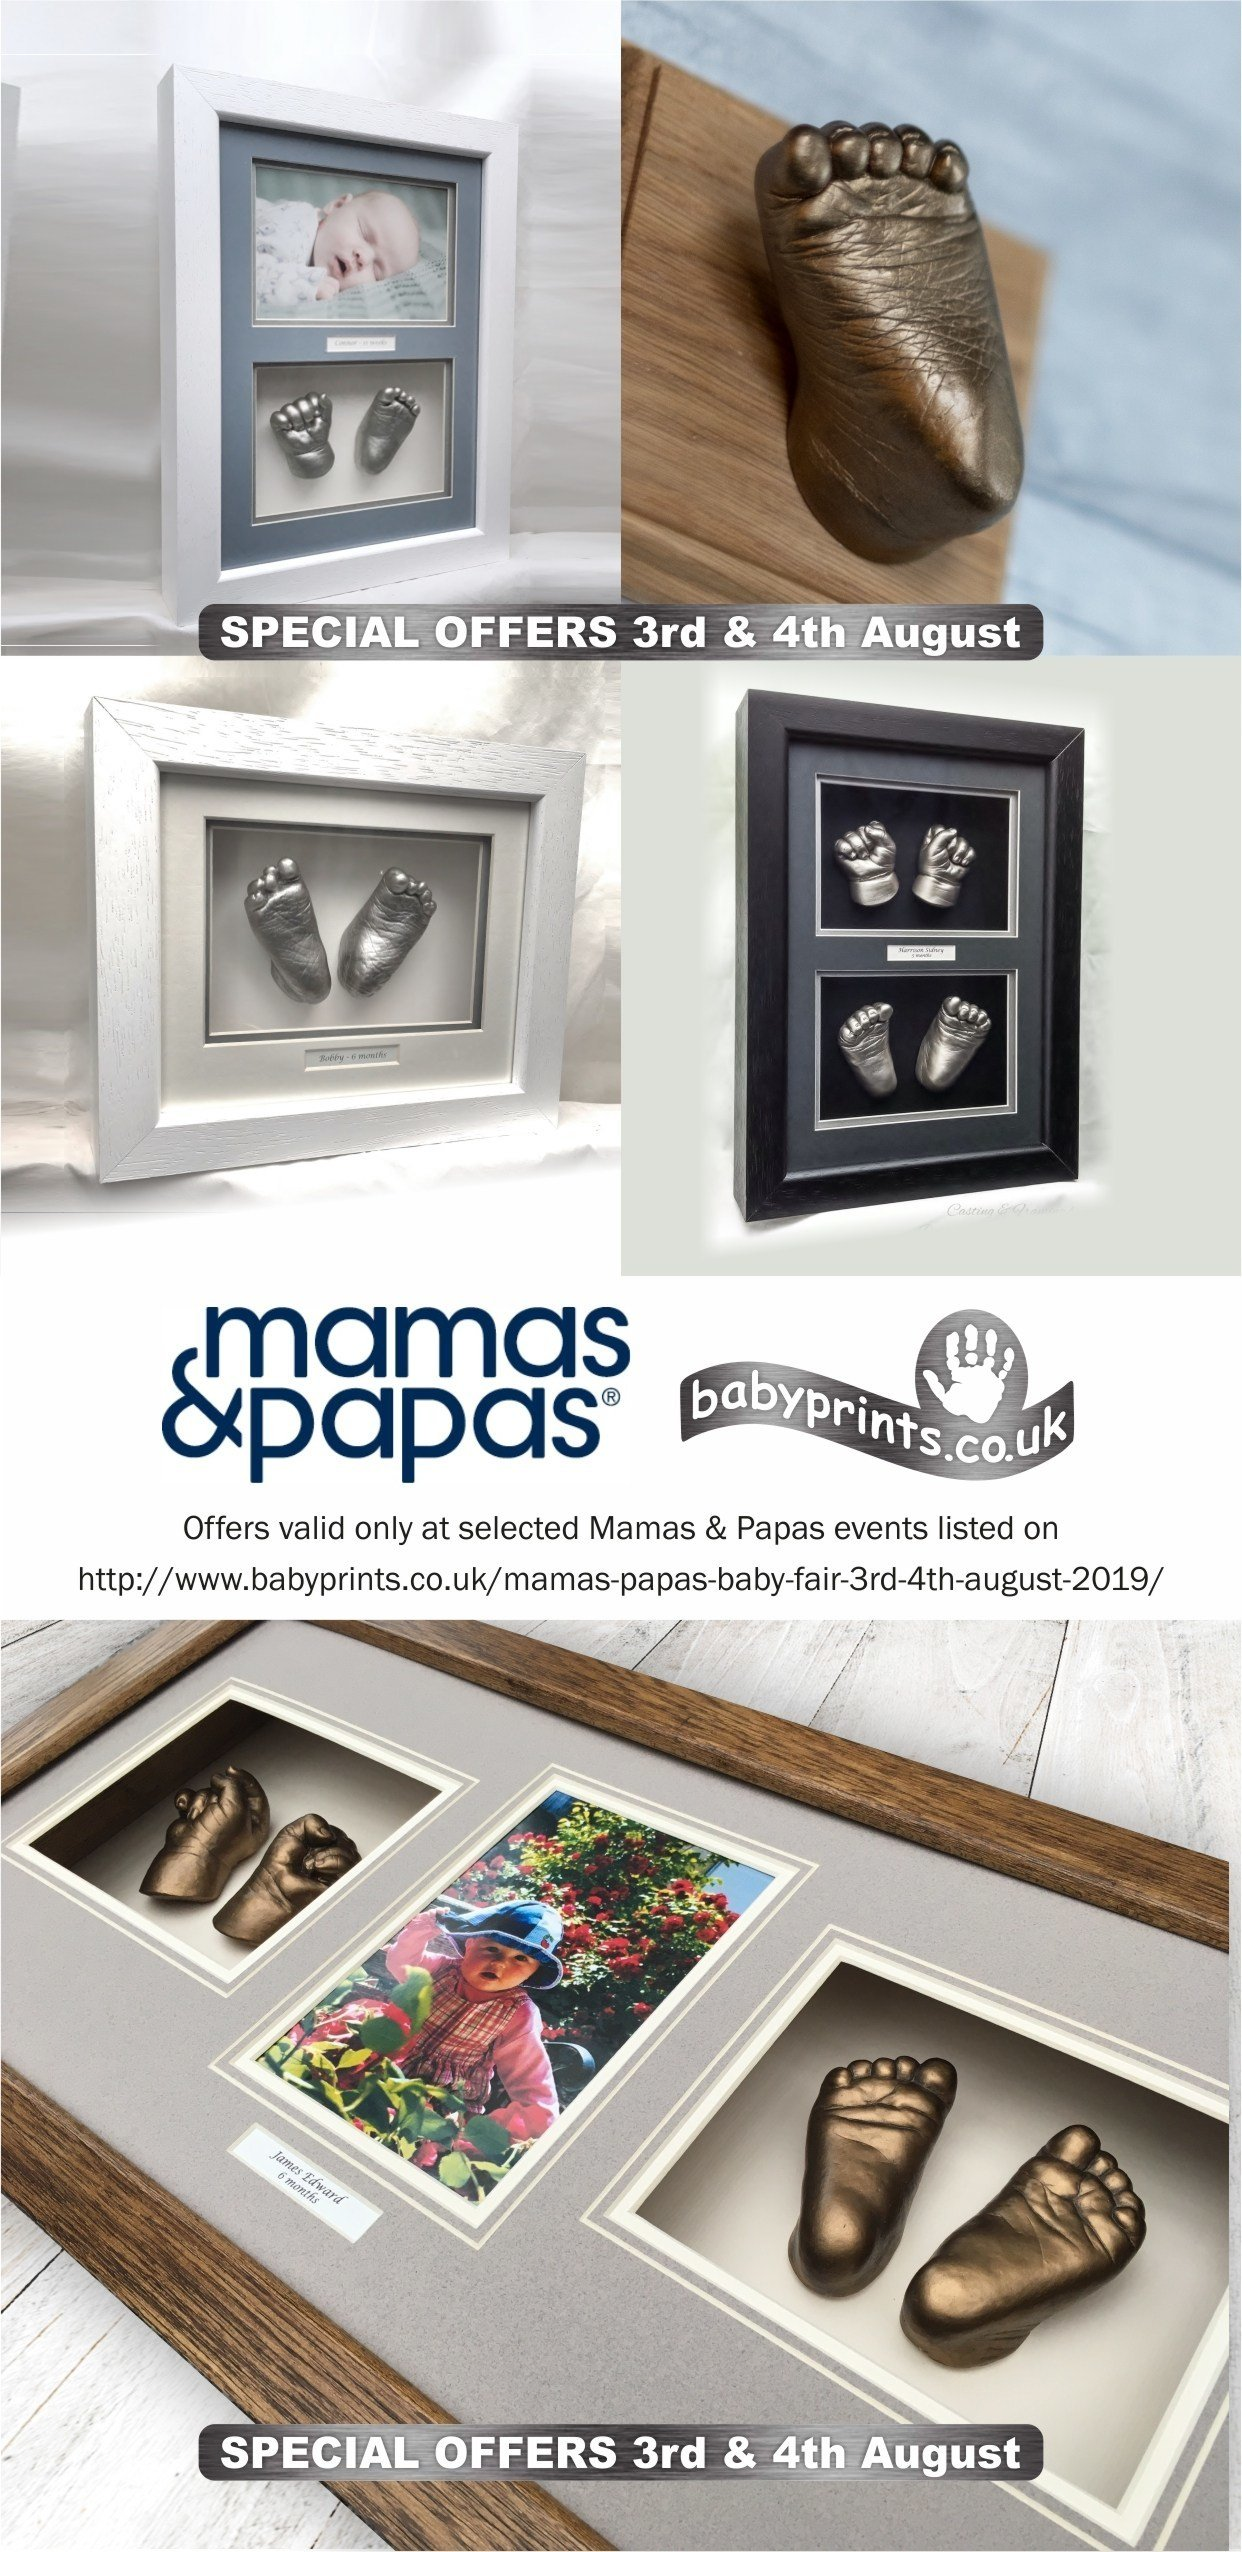 Mamas & Papas Baby Fair 3rd & 4th August 2019